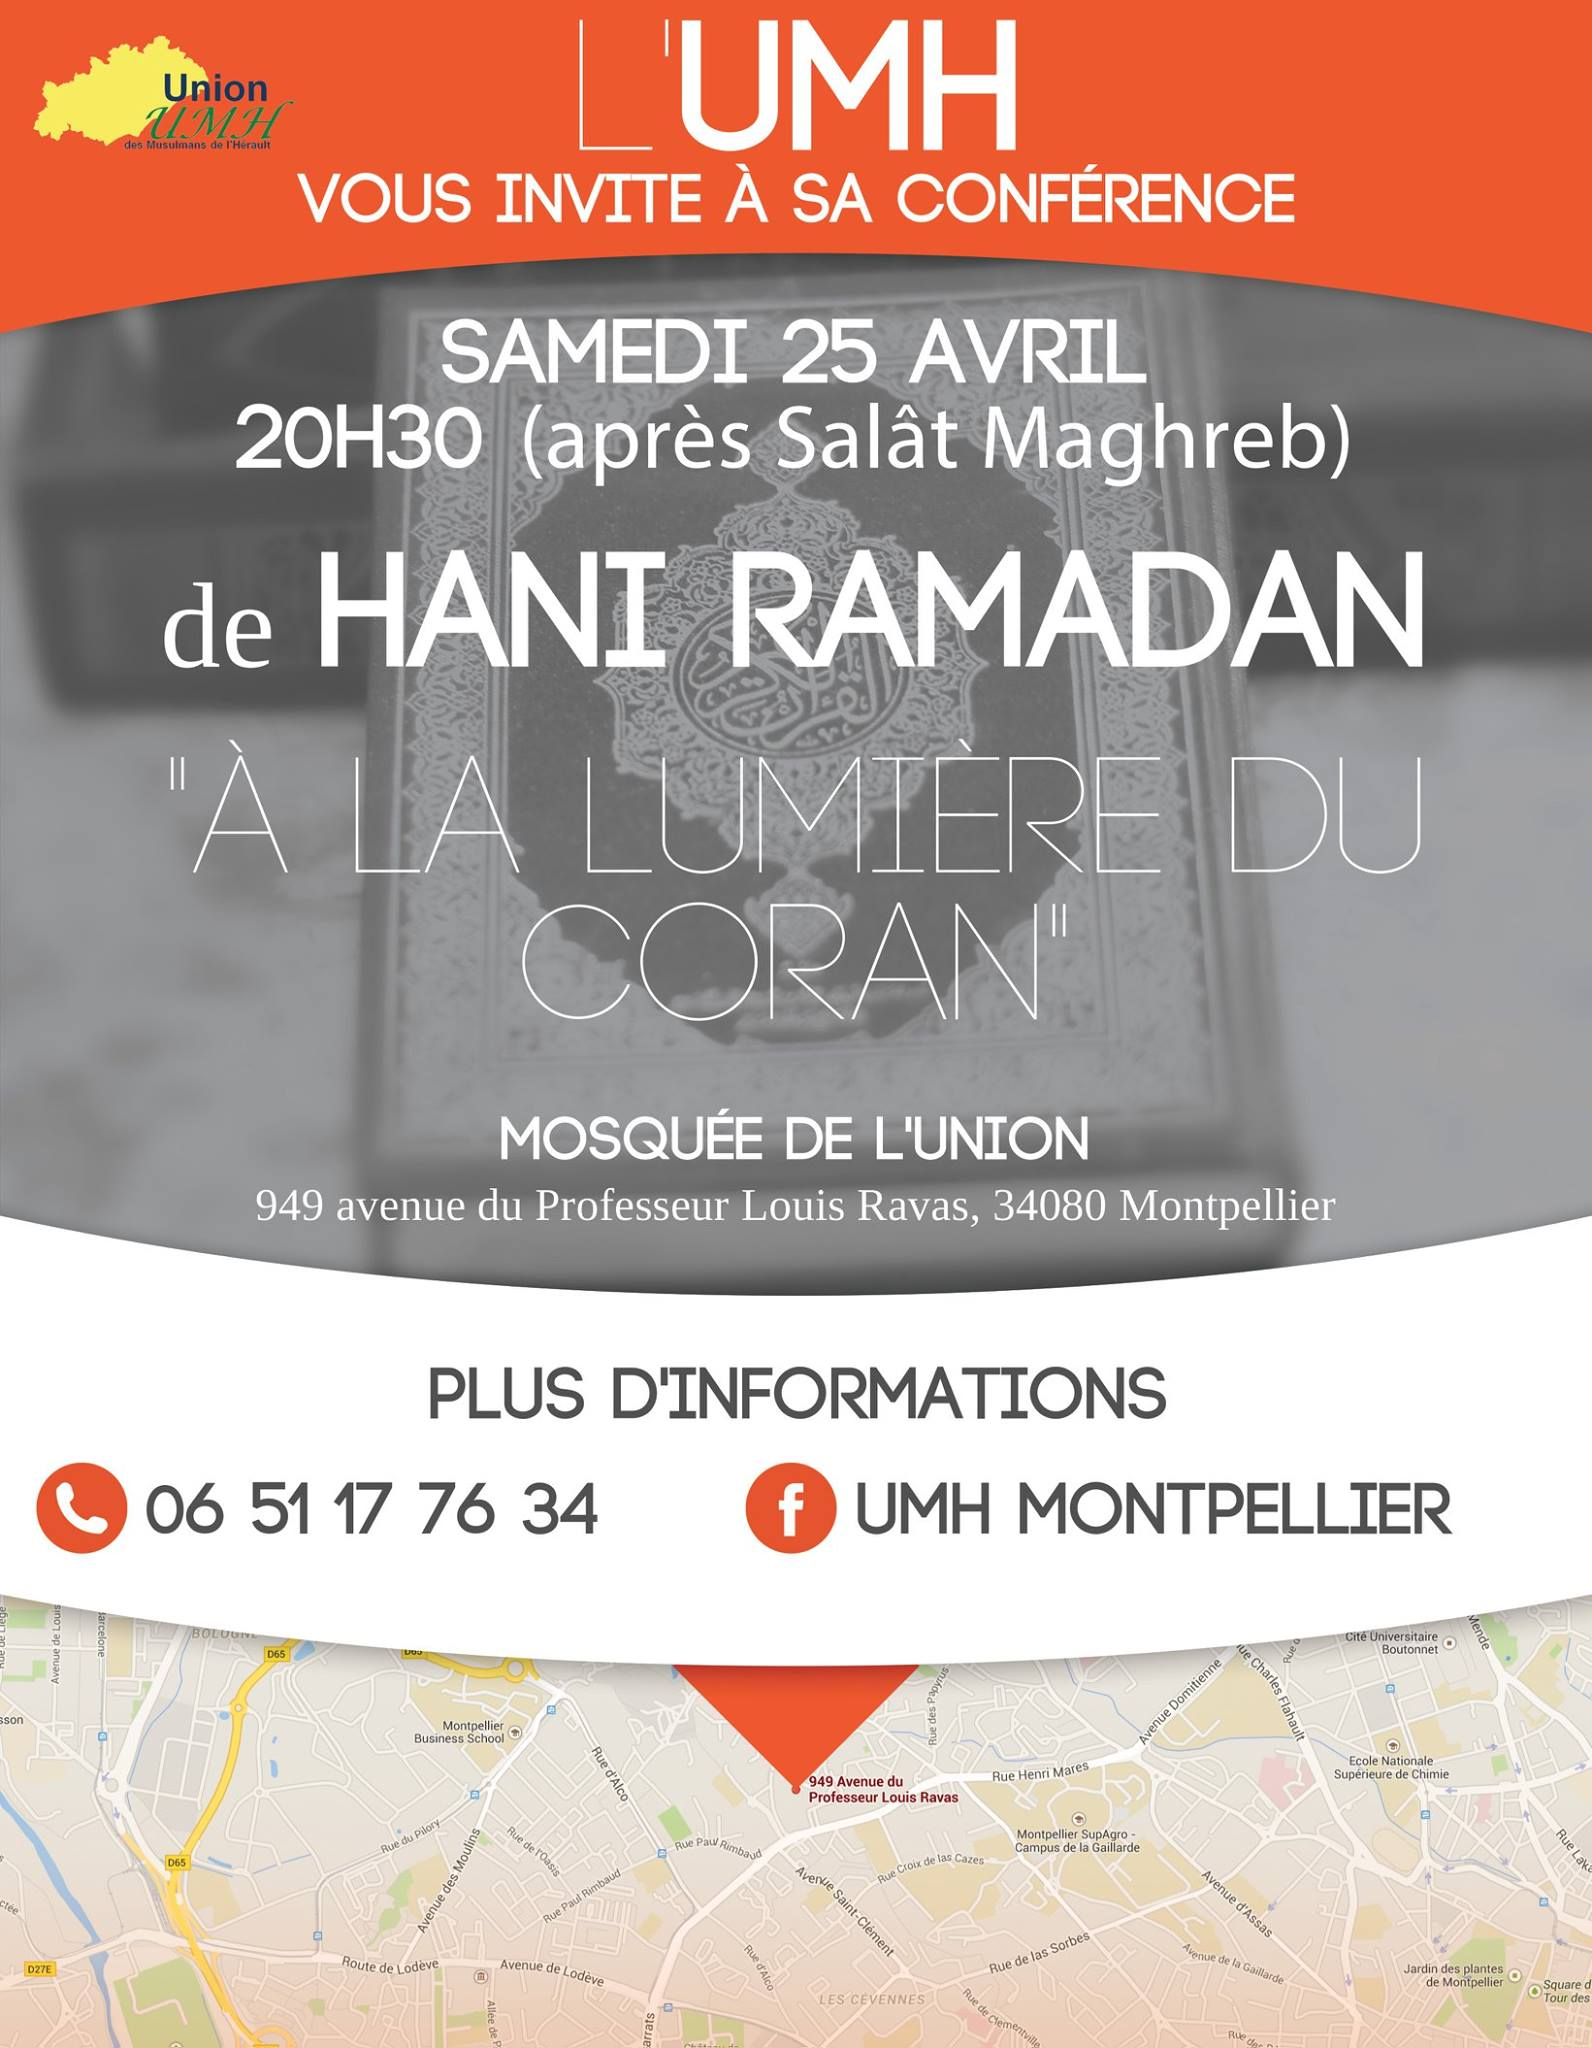 conf rence de dr hani ramadan montpellier 949 avenue du professeur louis ravas mosqu e de. Black Bedroom Furniture Sets. Home Design Ideas